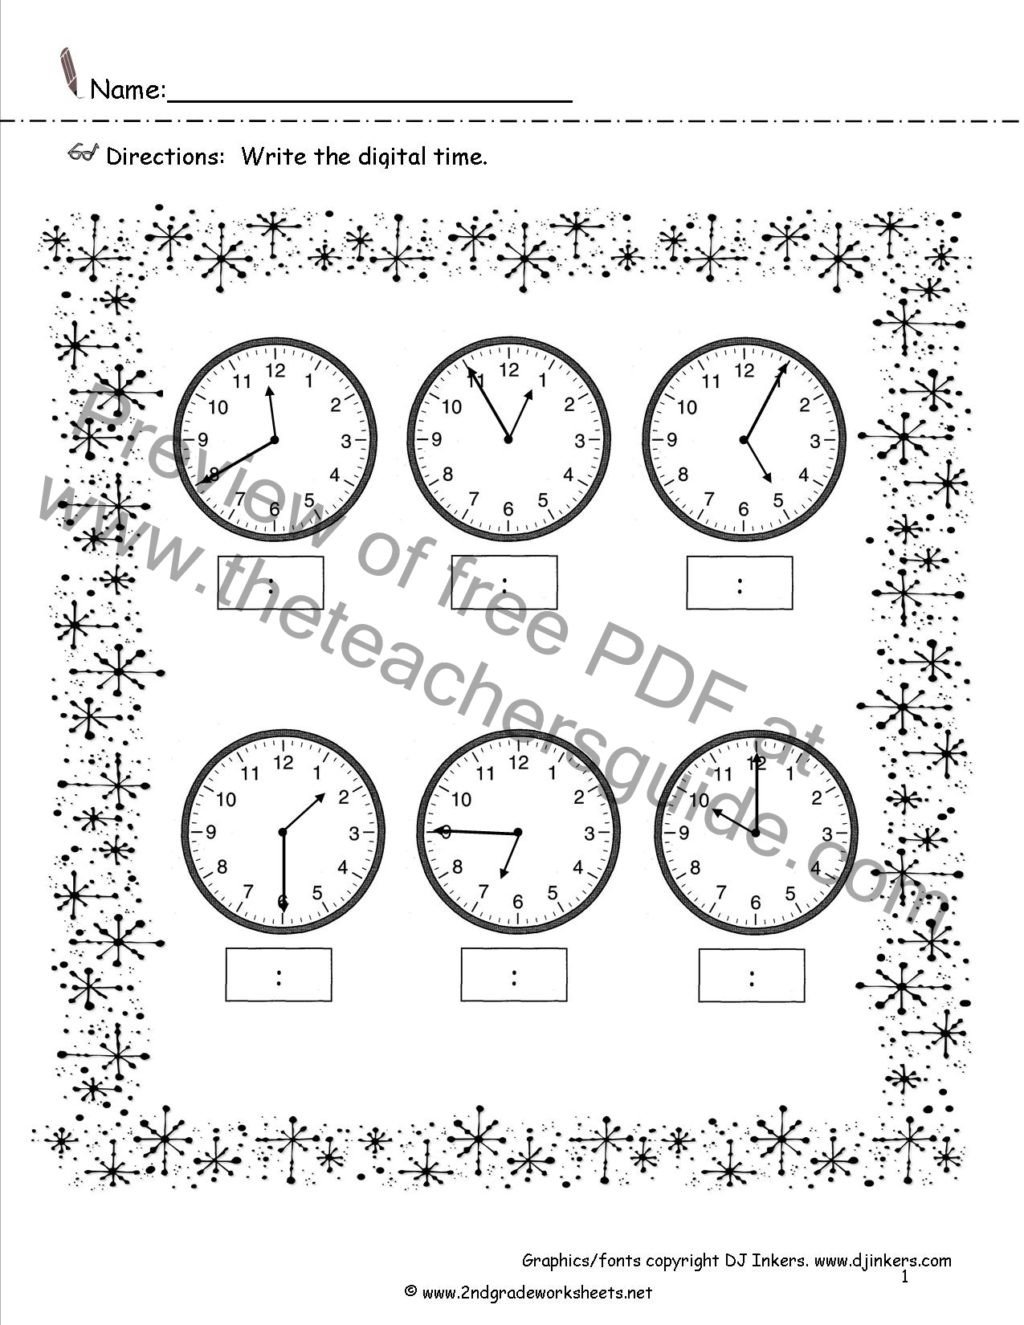 kindergarten home school worksheets free printable math sheets for 2nd grade alphabet drawing 1st facts 4th riddles short passages 3rd is tracing developmentally appropriate reading 1024x1325